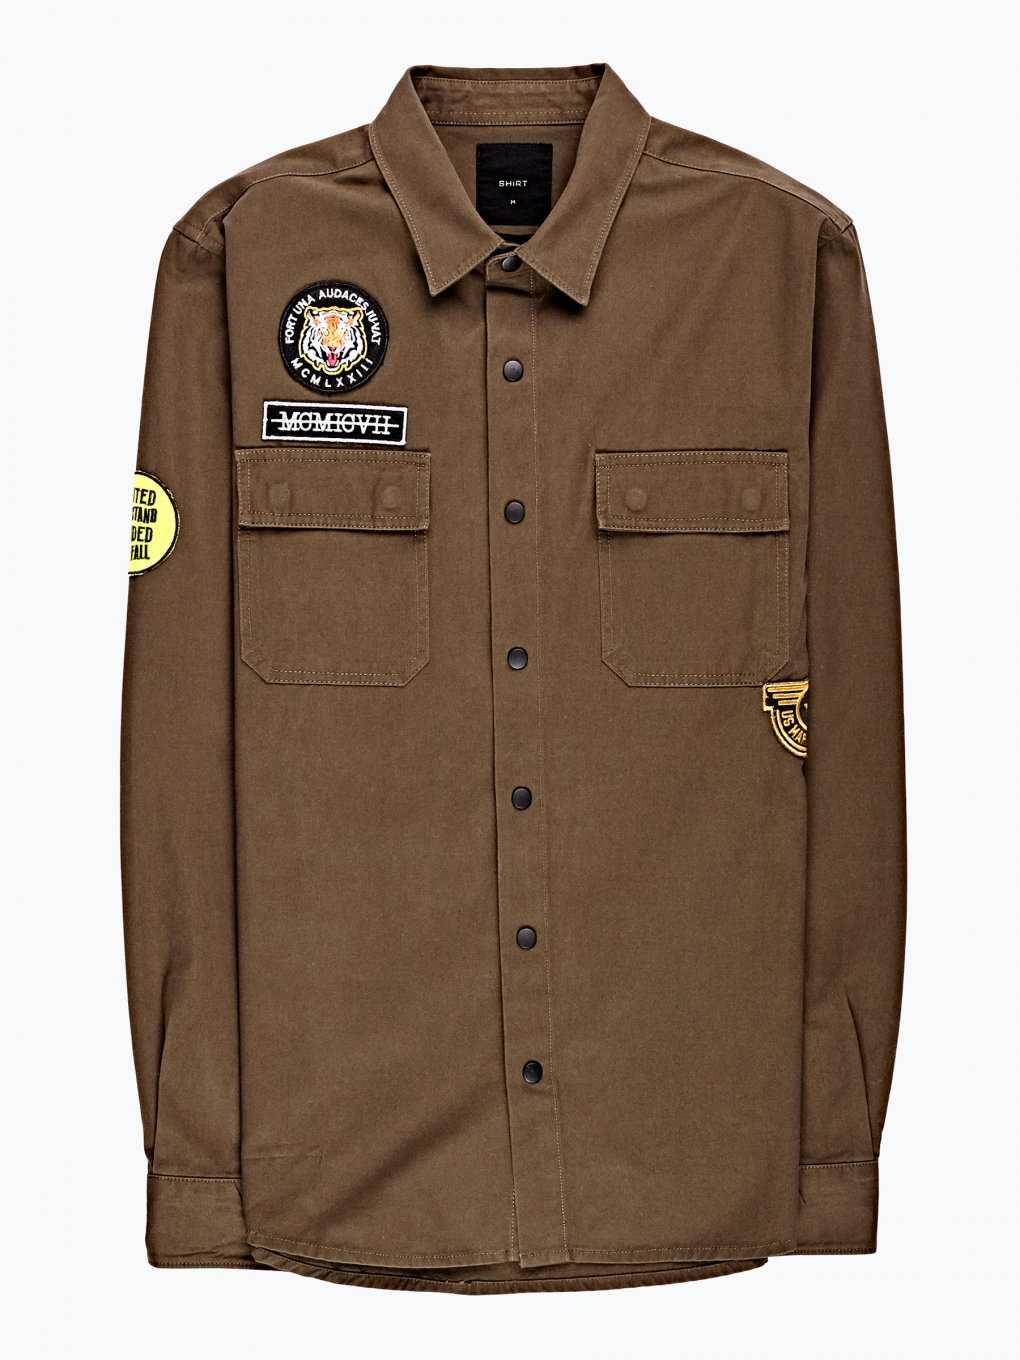 Cotton shirt with patches